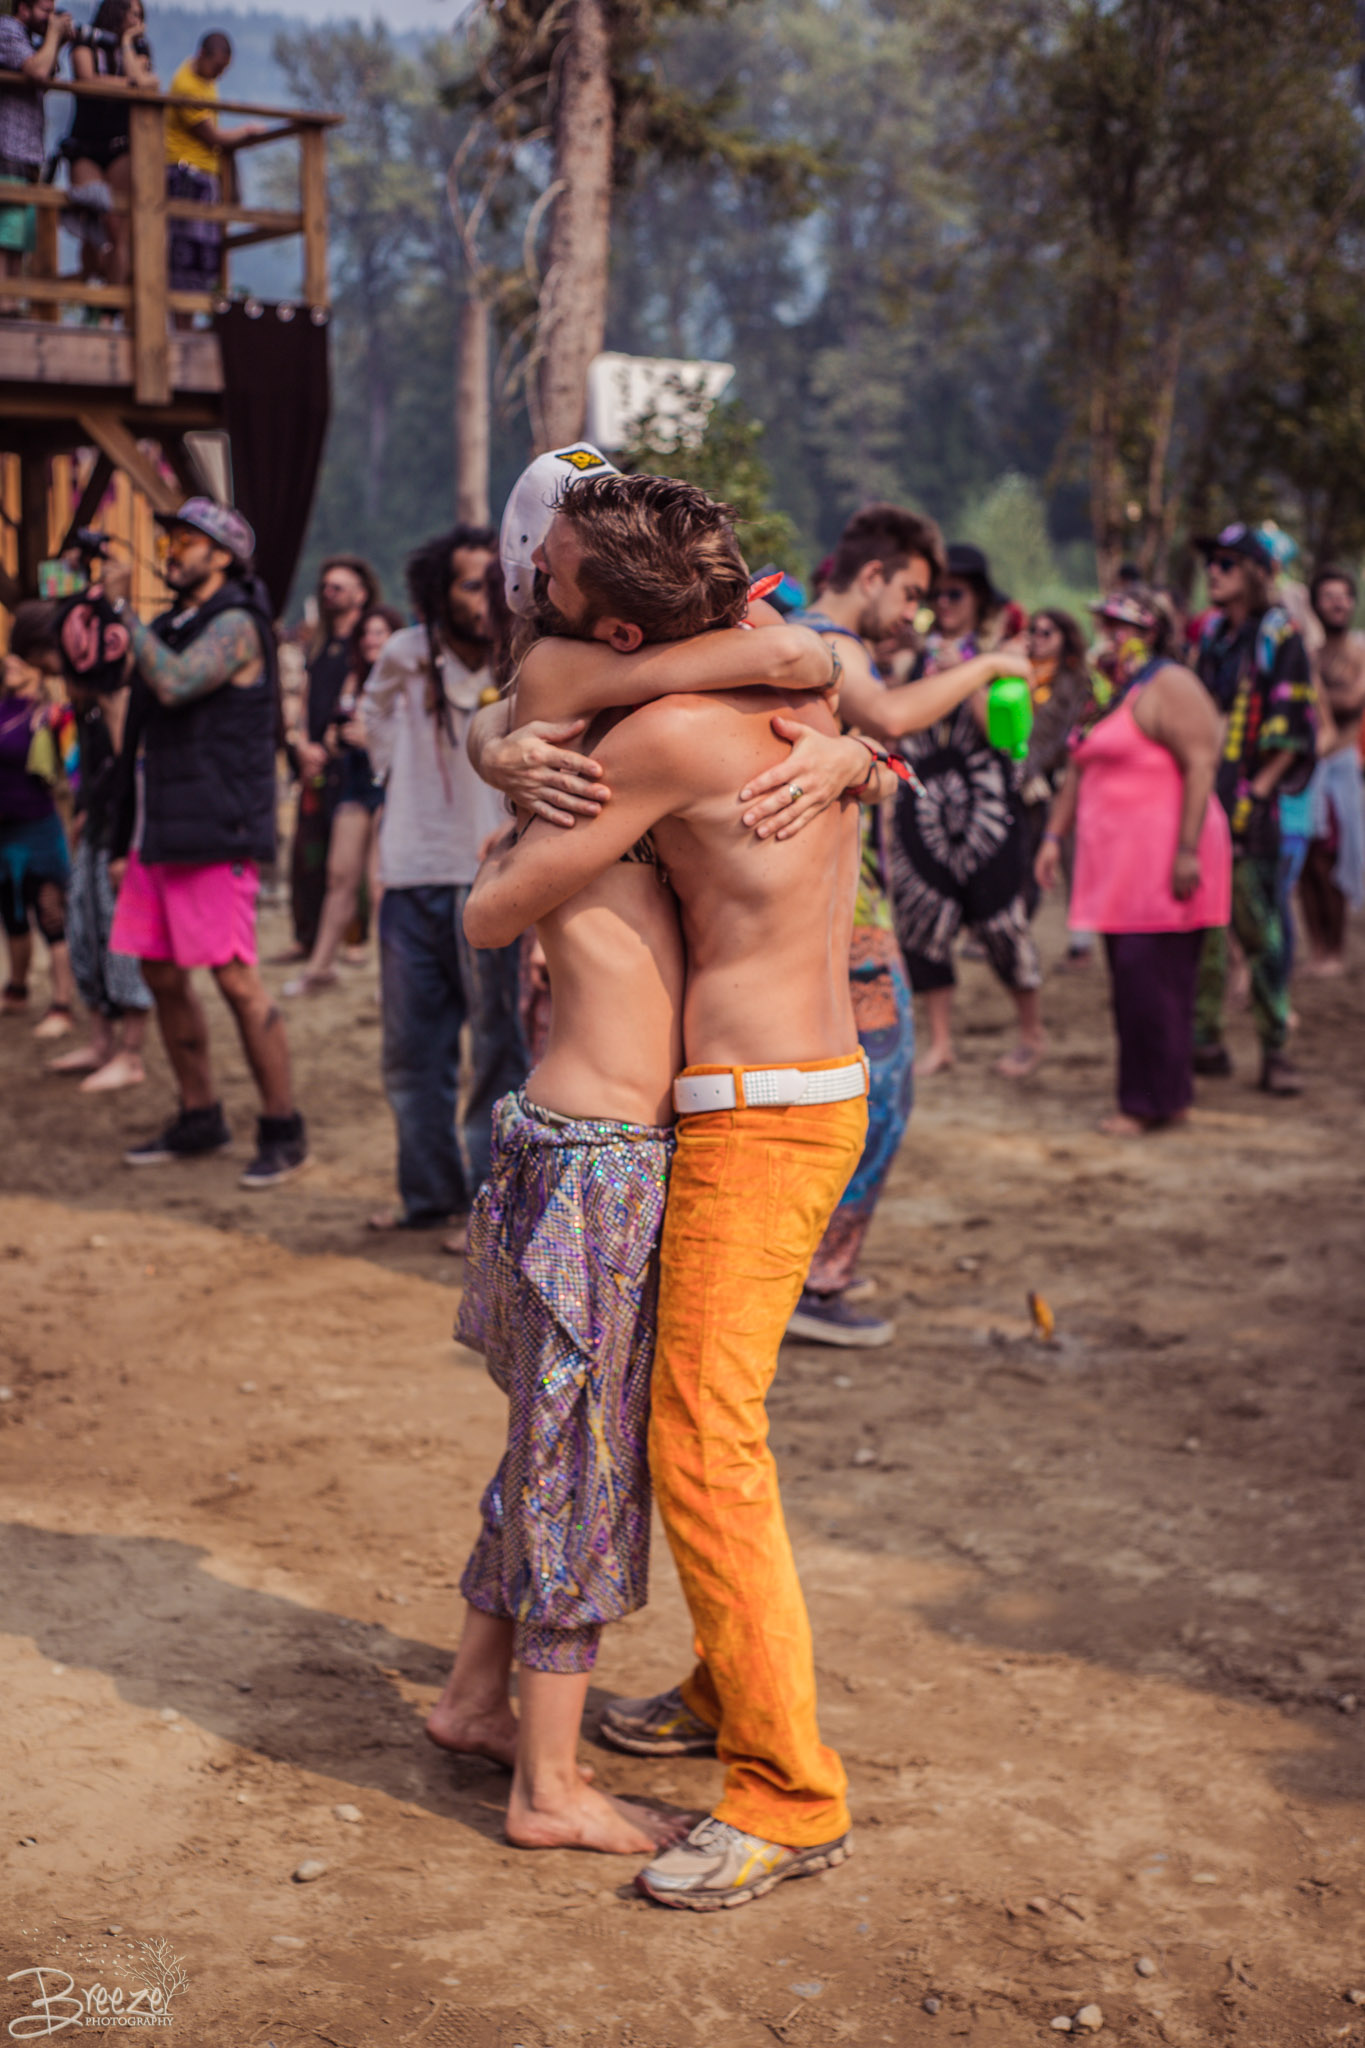 Brie'Ana Breeze Photography & Media - Shambhala 2018-1773.jpg